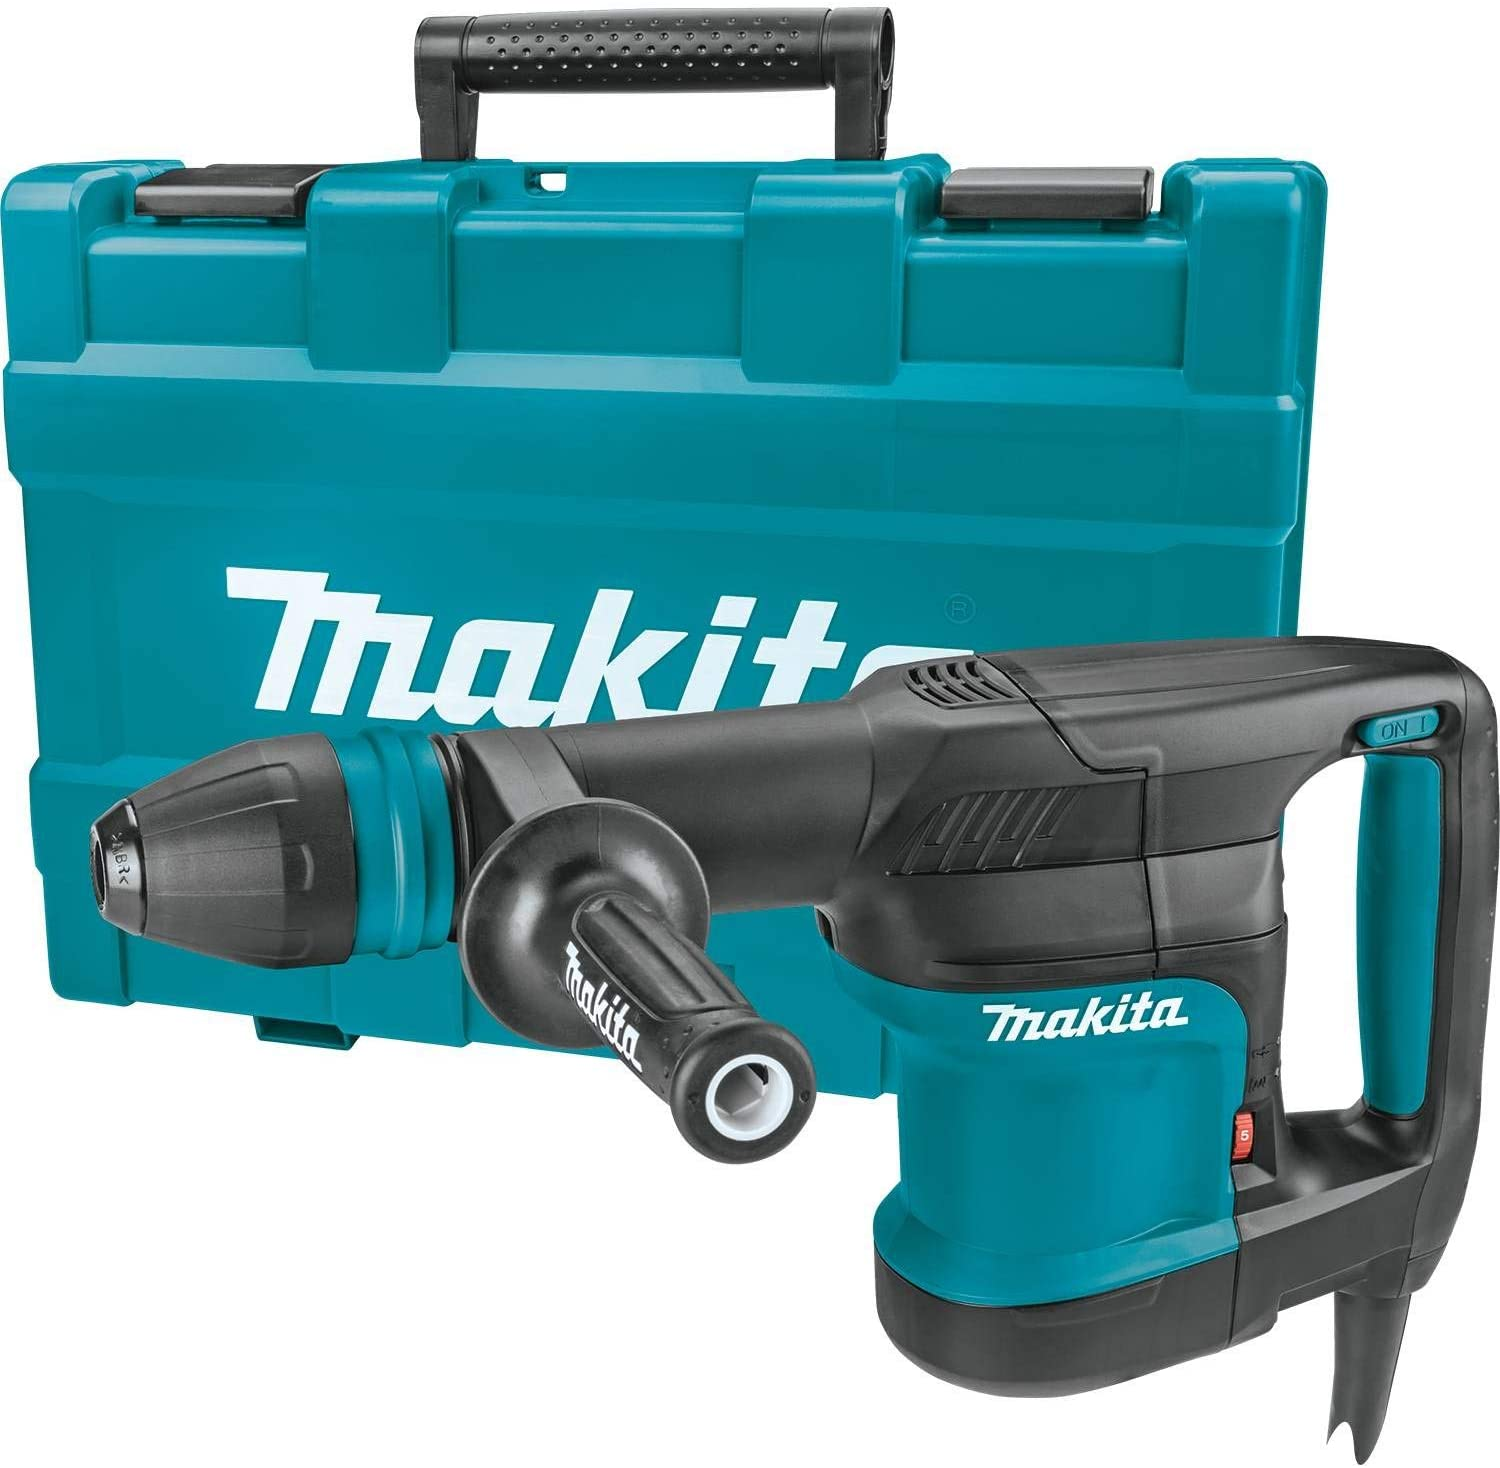 Makita 5kg Sds-max Chipping Hammer 110v MAKHM0870CL | LED lamp indicates when to replace carbon brush | toolforce.ie